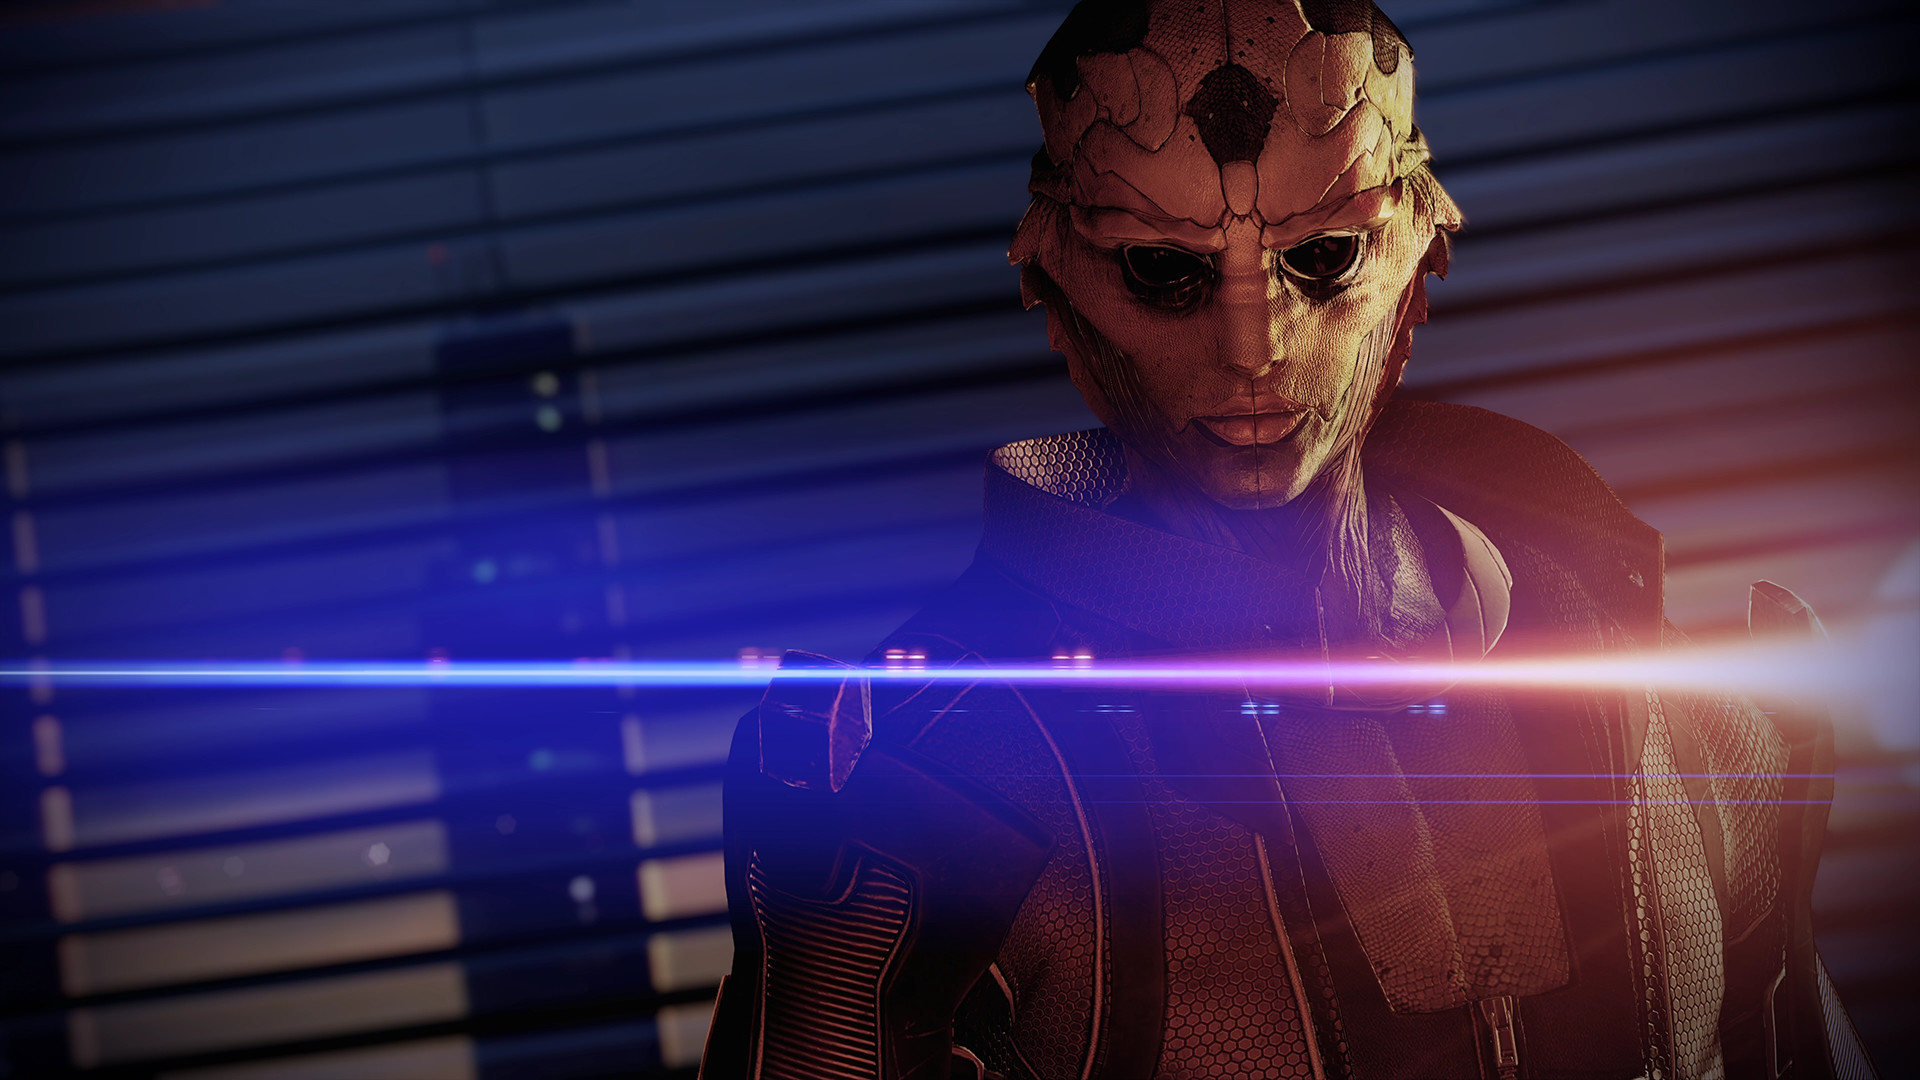 Mass Effect Remastered Review: Buying, Budgeting, or Destroying?